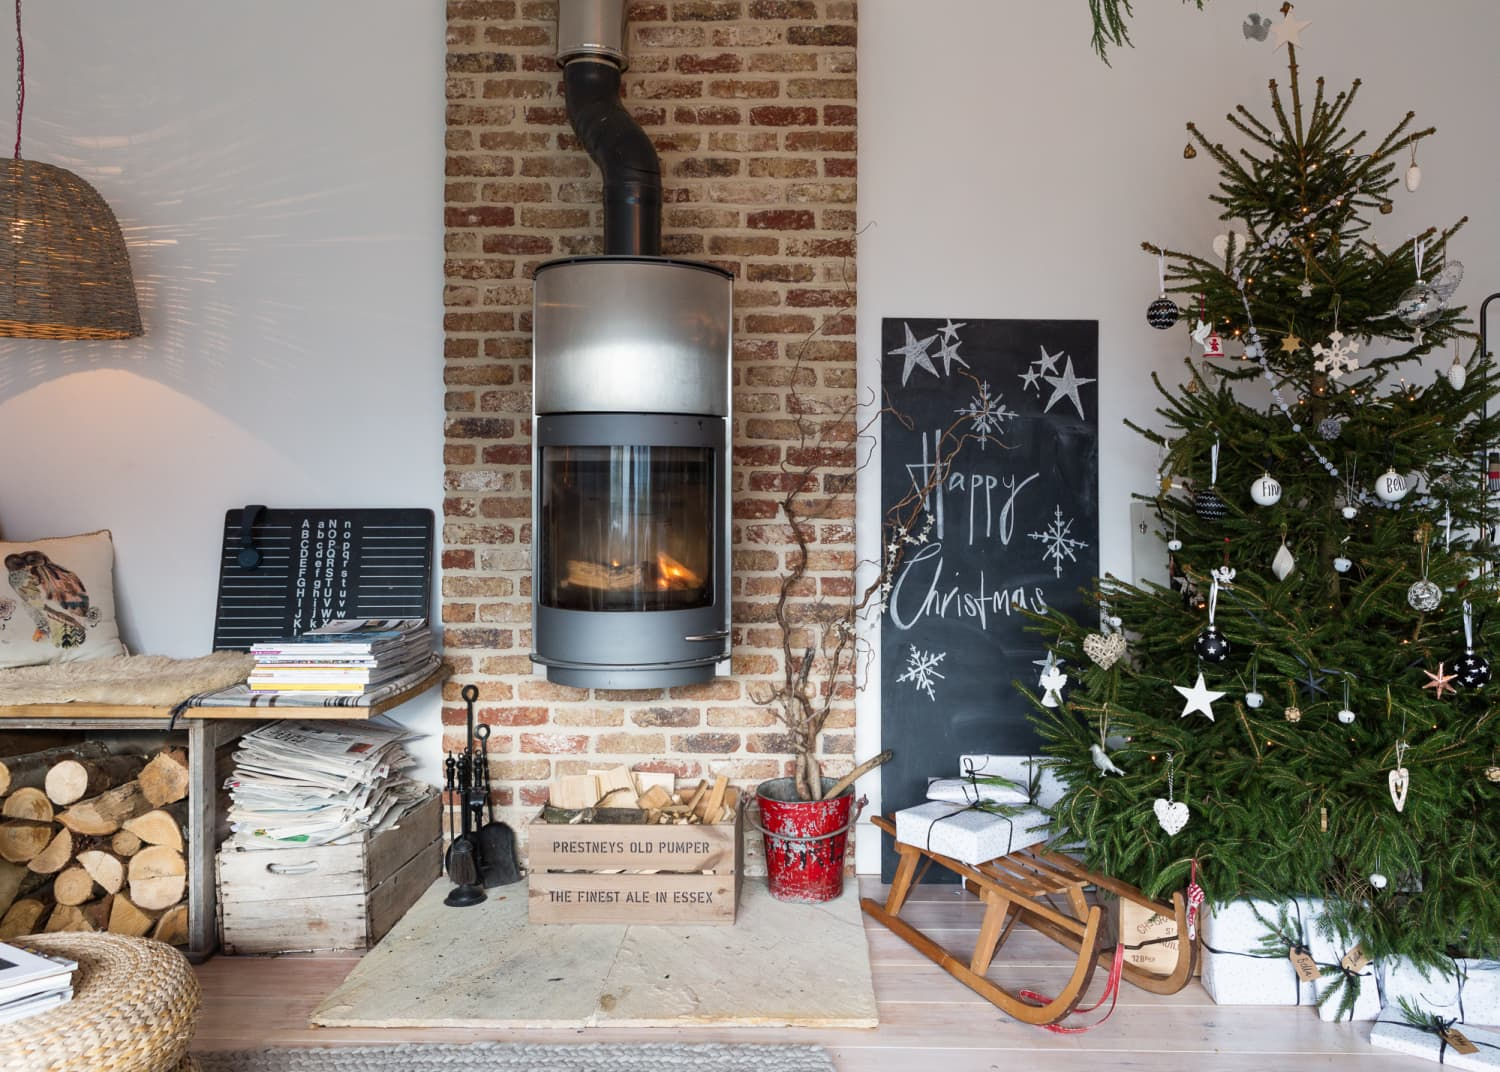 Our Absolute Favorite Christmas Tree Decorating Ideas for 2017